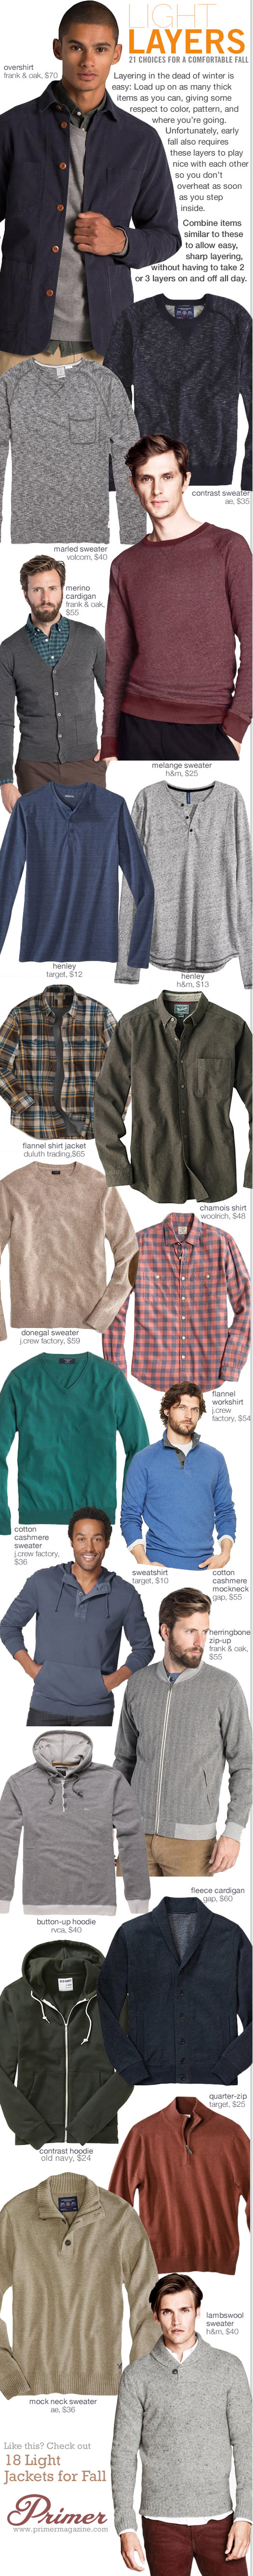 Collage of 21 options for light layers